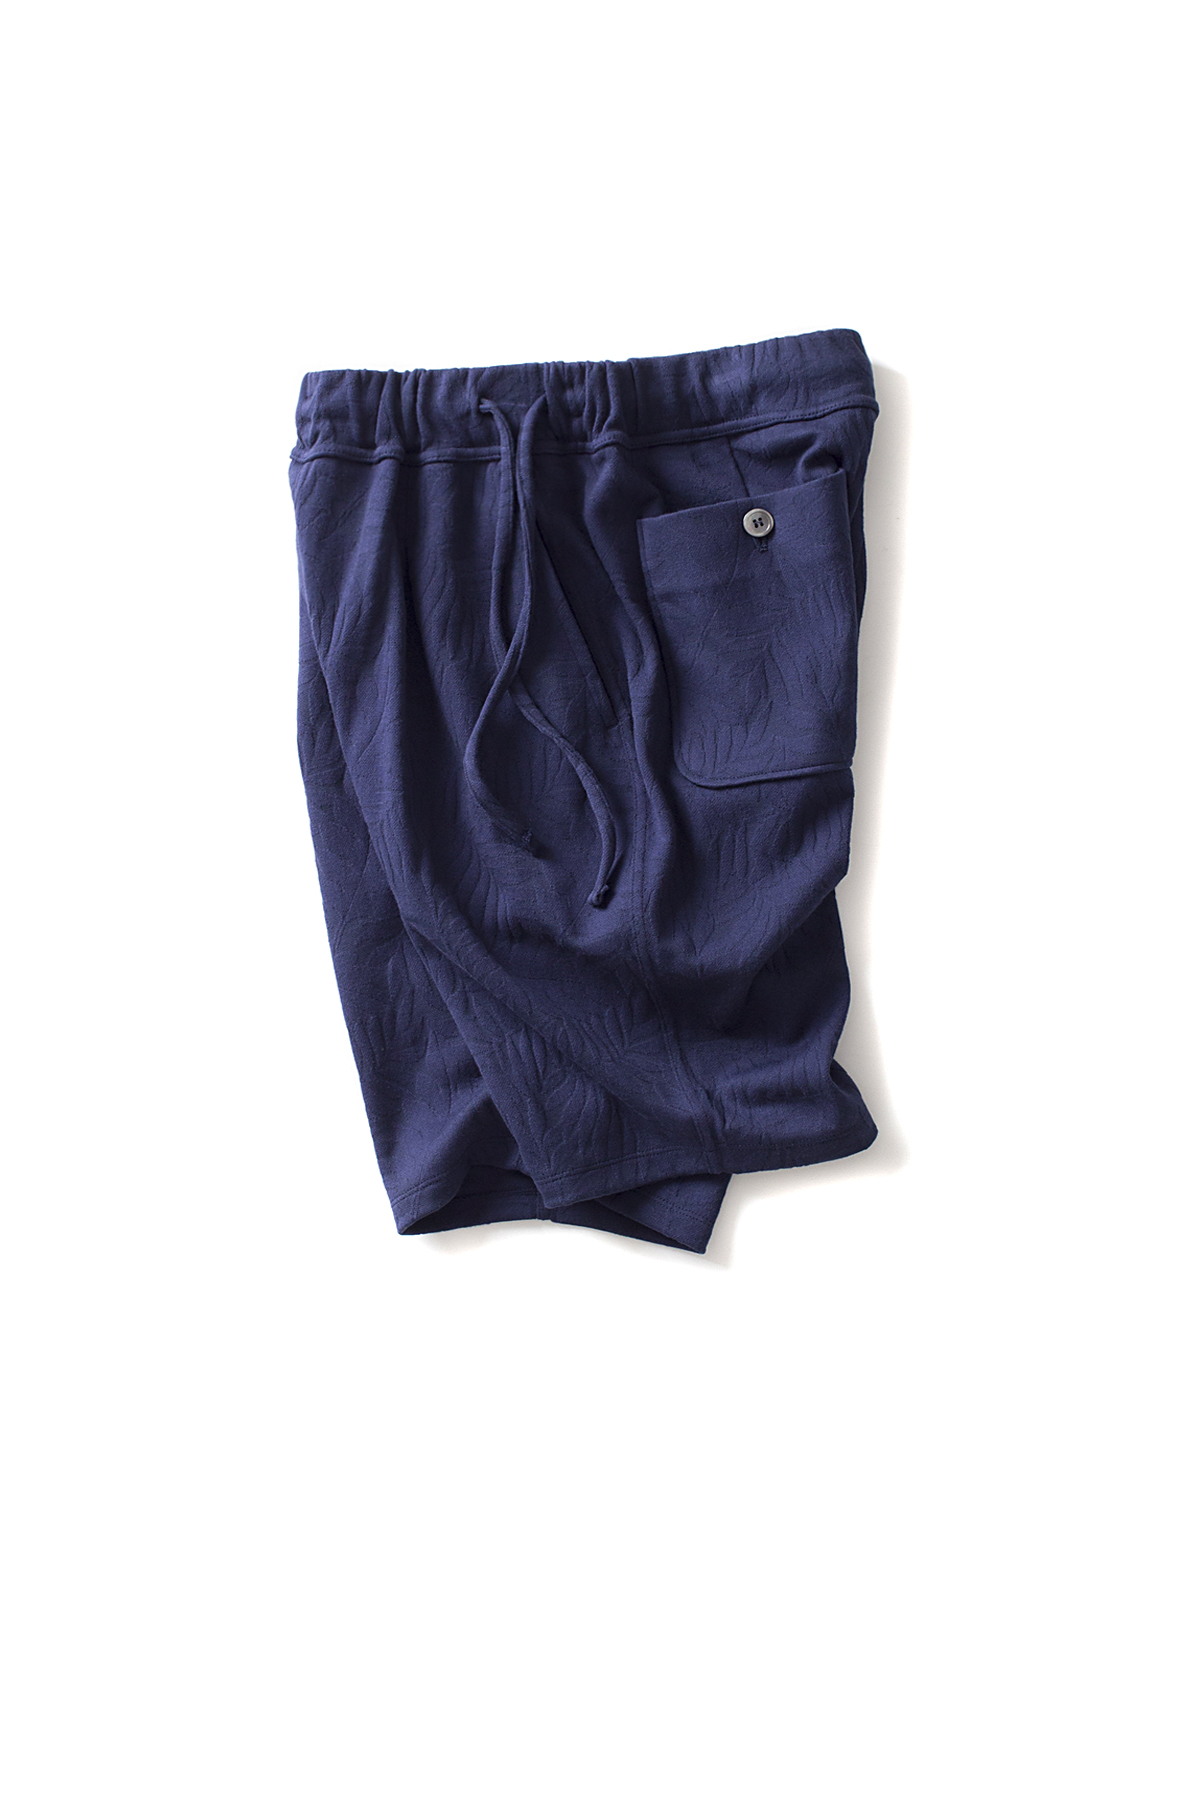 Curly : Palm Shorts (Navy JAQ)